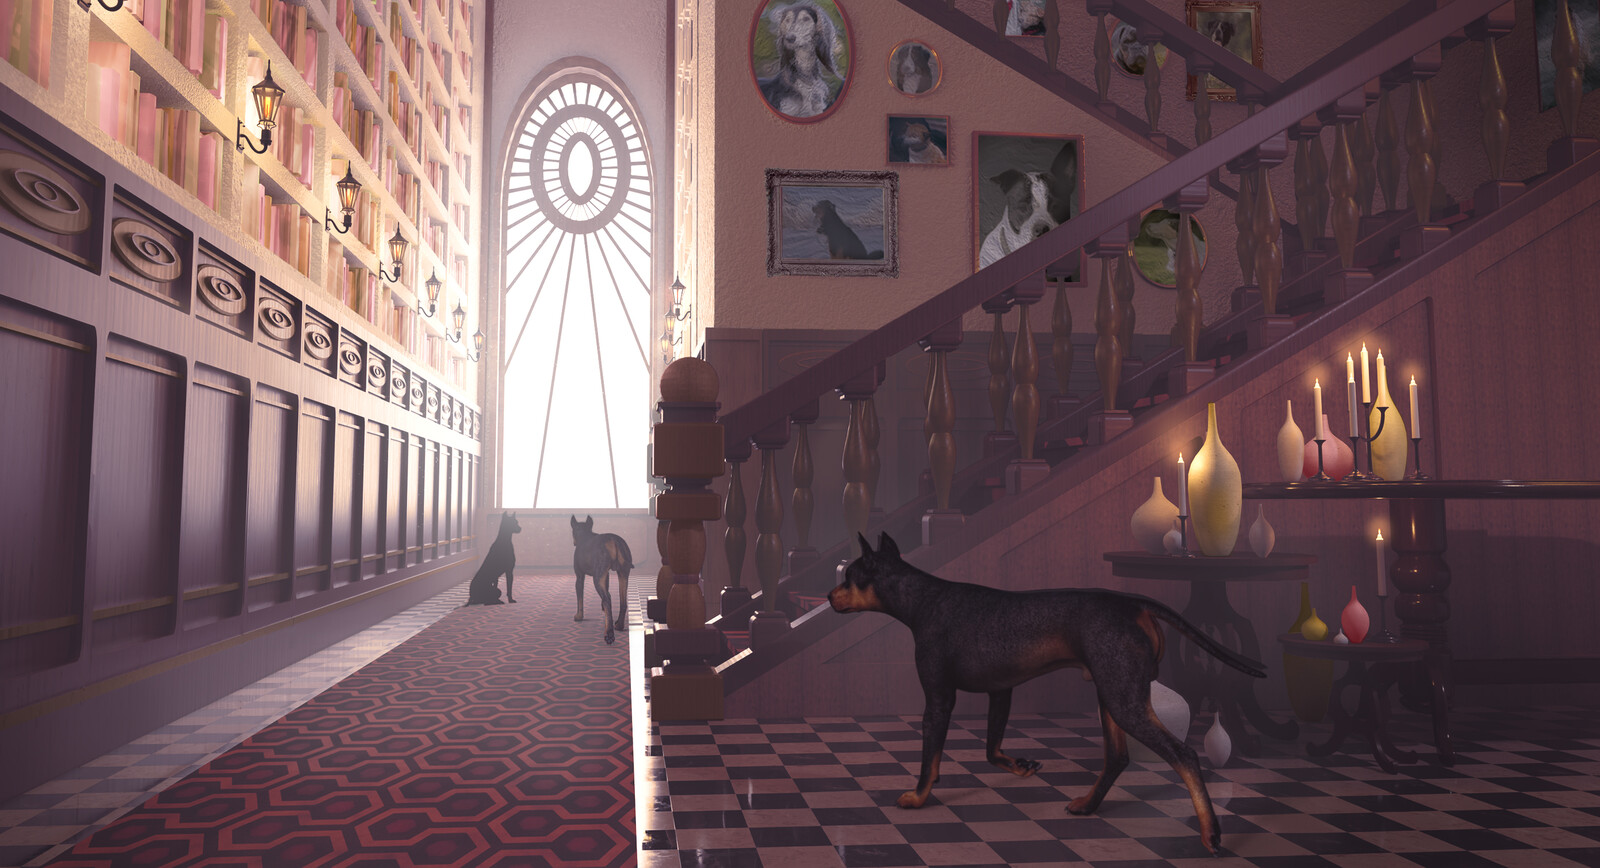 Victorian interior with dogs